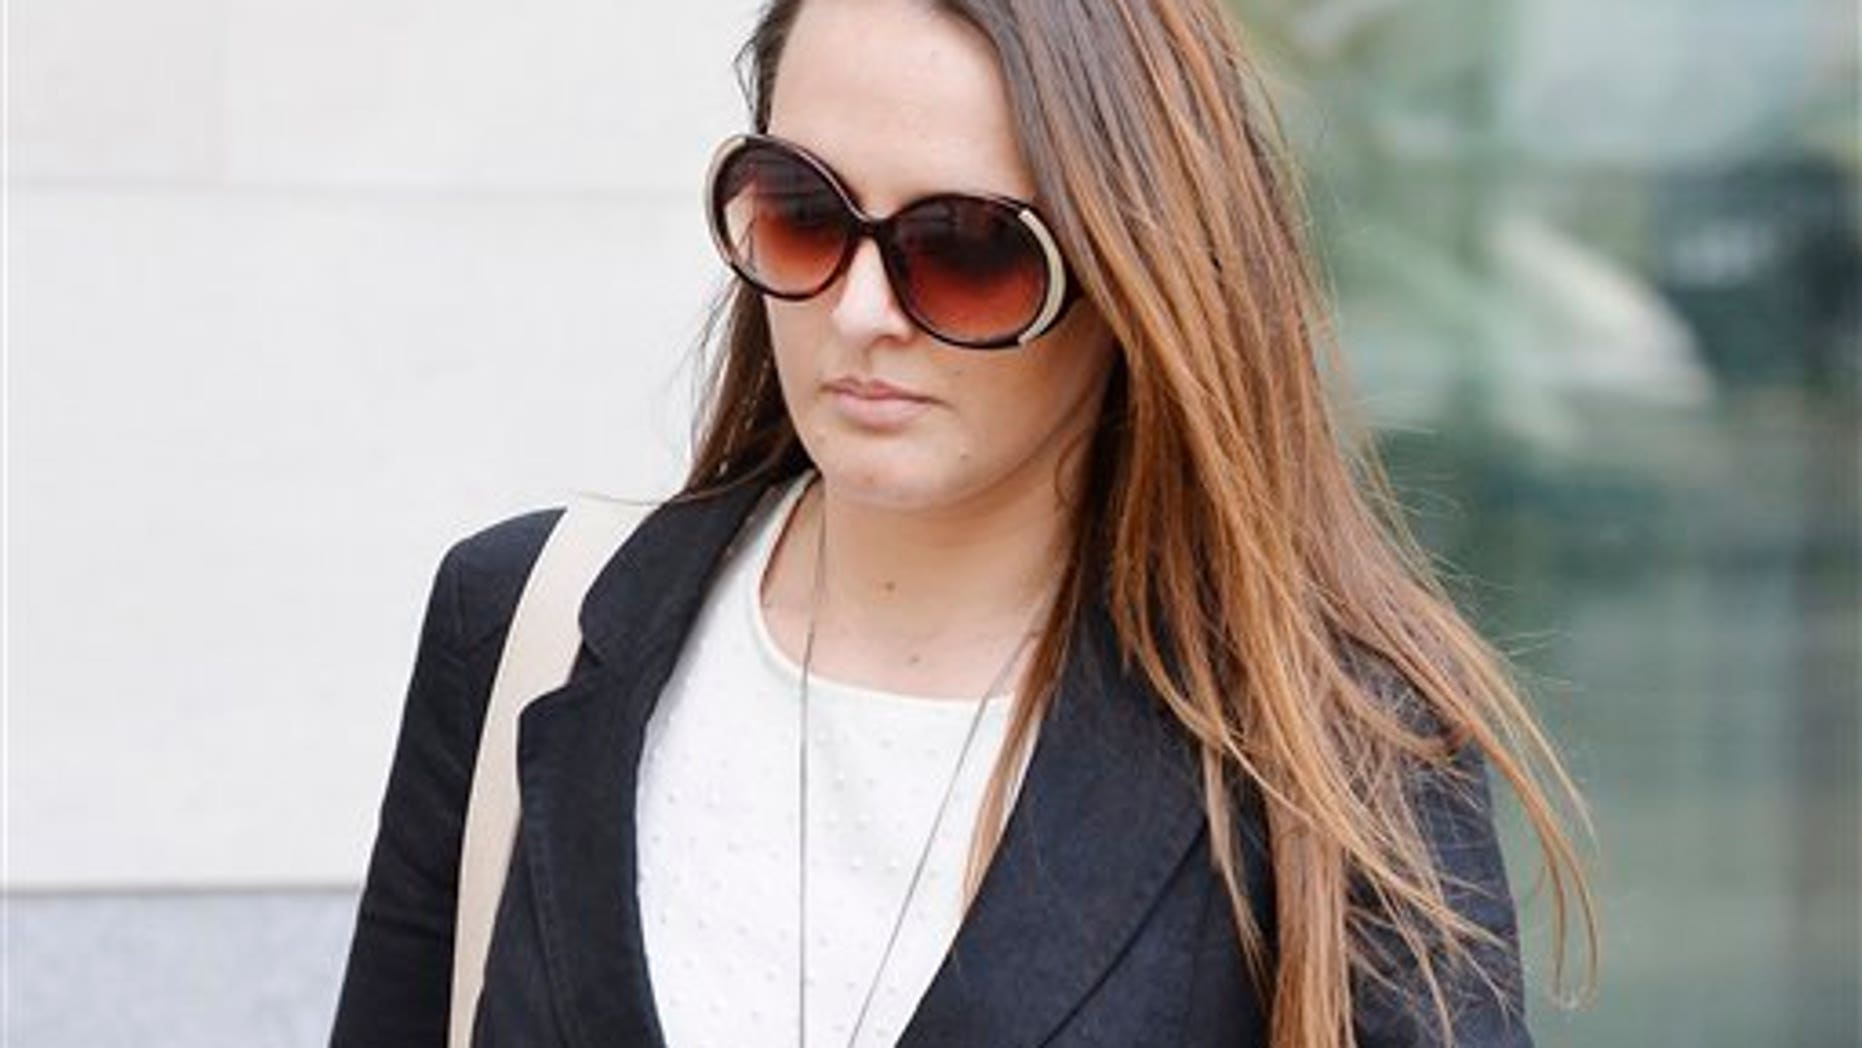 Meerkat expert Caroline Westlake was sentenced in London Wednesday. (John Stillwell/PA via AP)